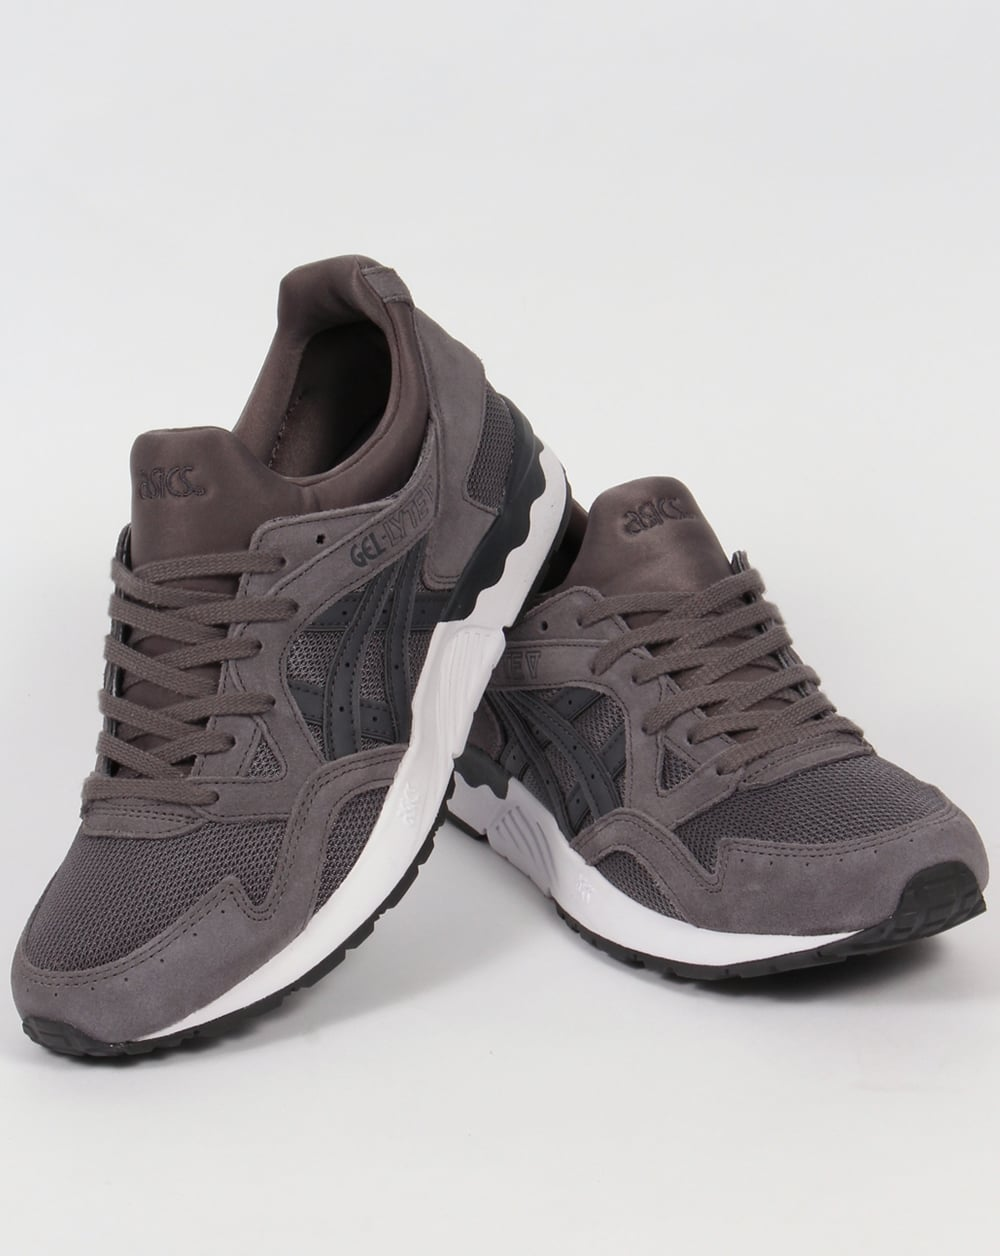 asics gel lyte v trainers carbon dark grey 5 shoes runners sneakers. Black Bedroom Furniture Sets. Home Design Ideas